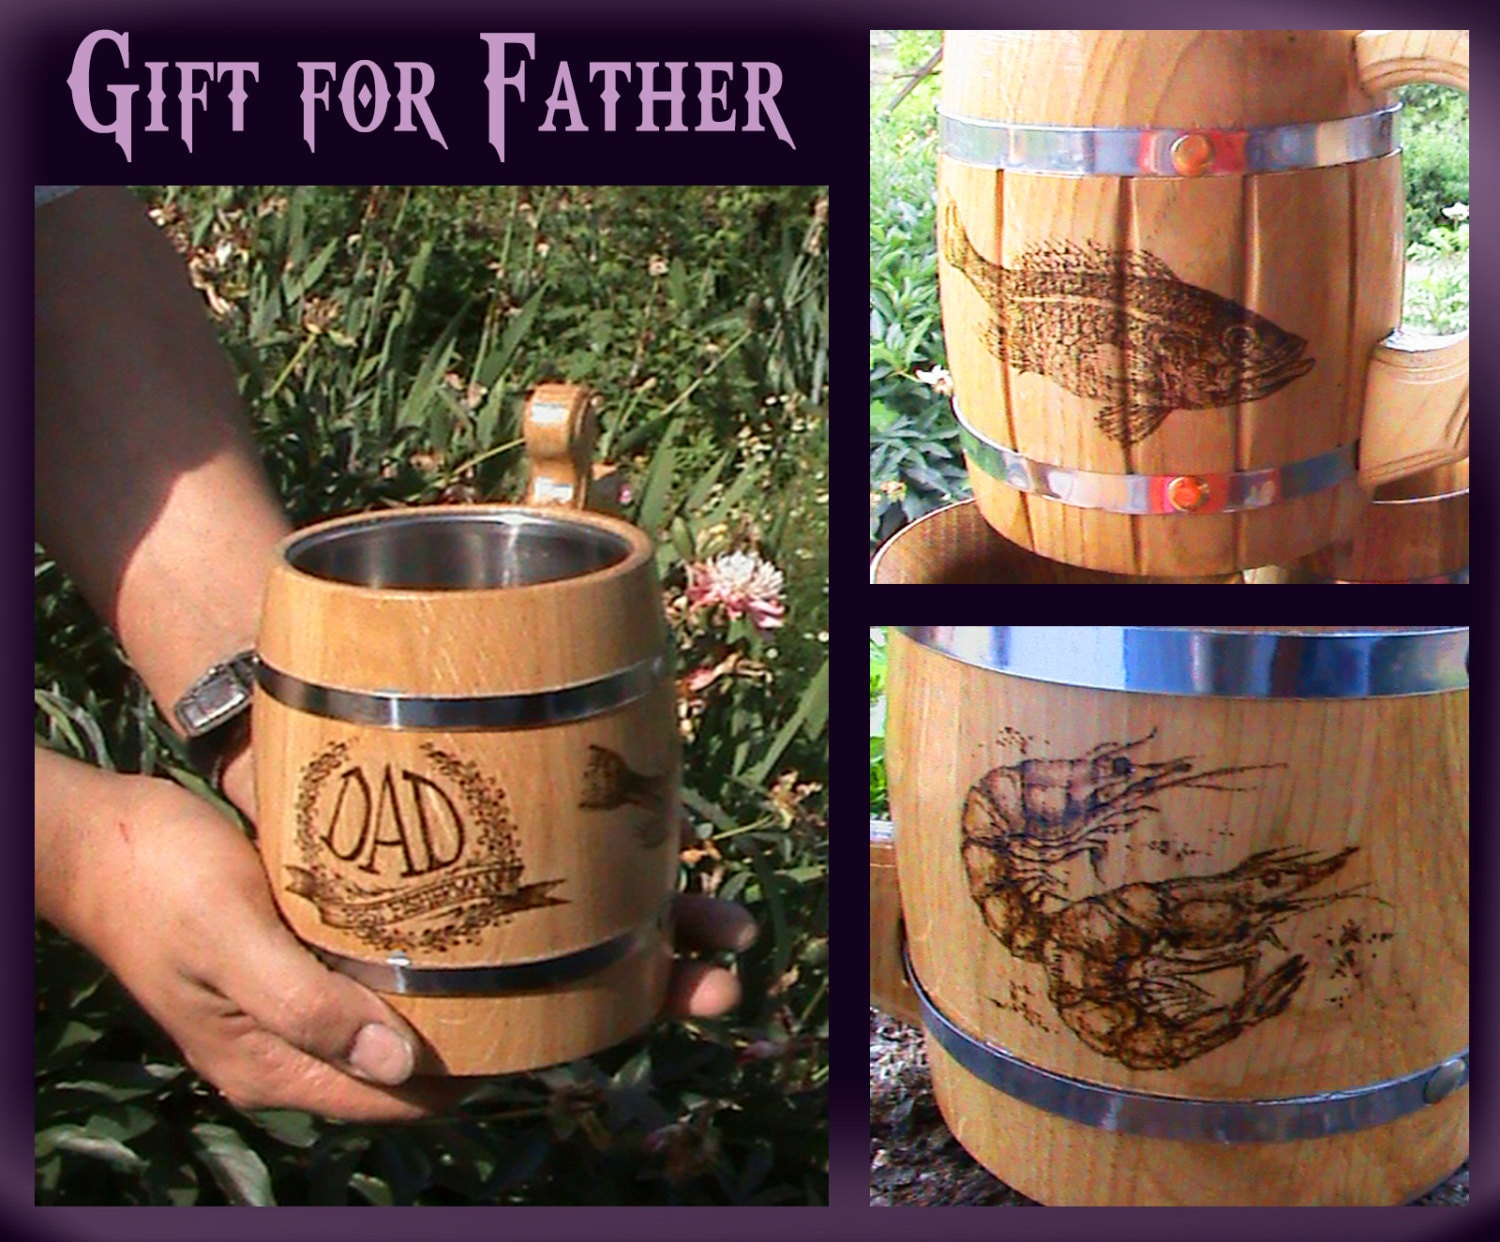 Beer mug fisherman gift fishing gifts gift for father fathers for Fishing gifts for dad